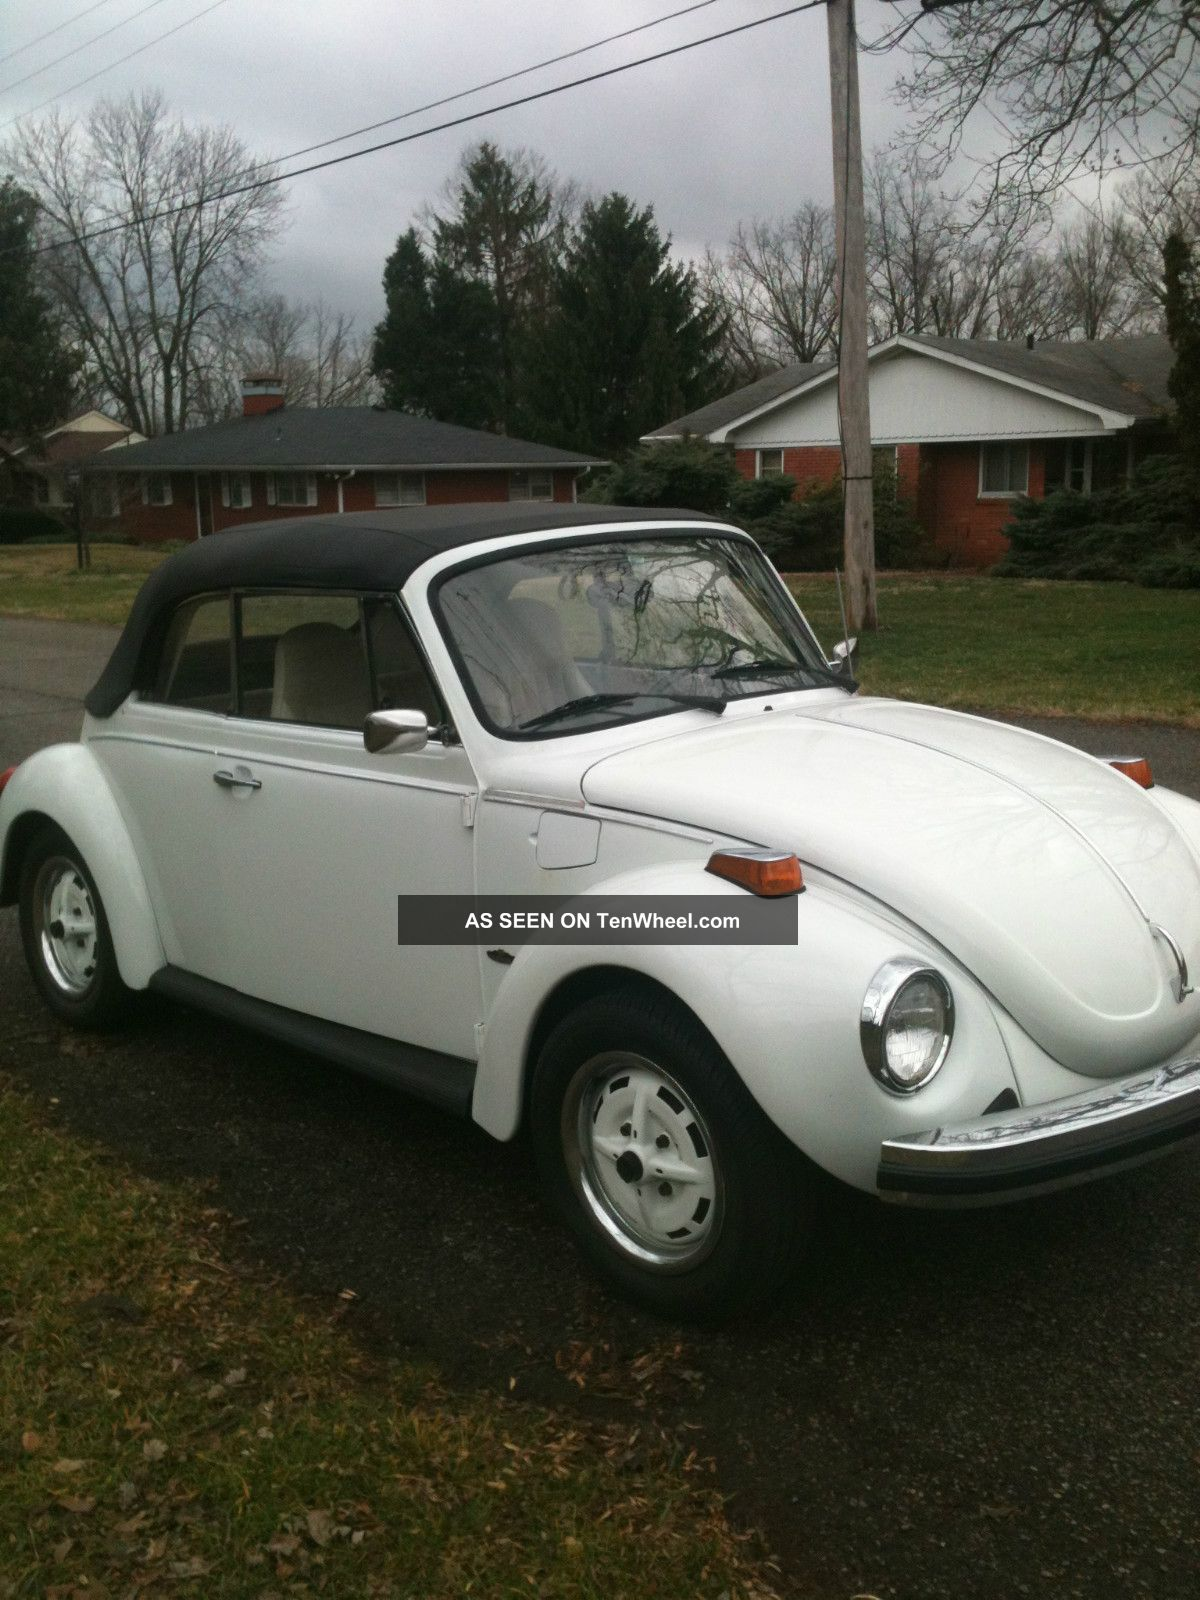 1975 Beetle Convertible - Just In Time To Put The Top Down Beetle - Classic photo